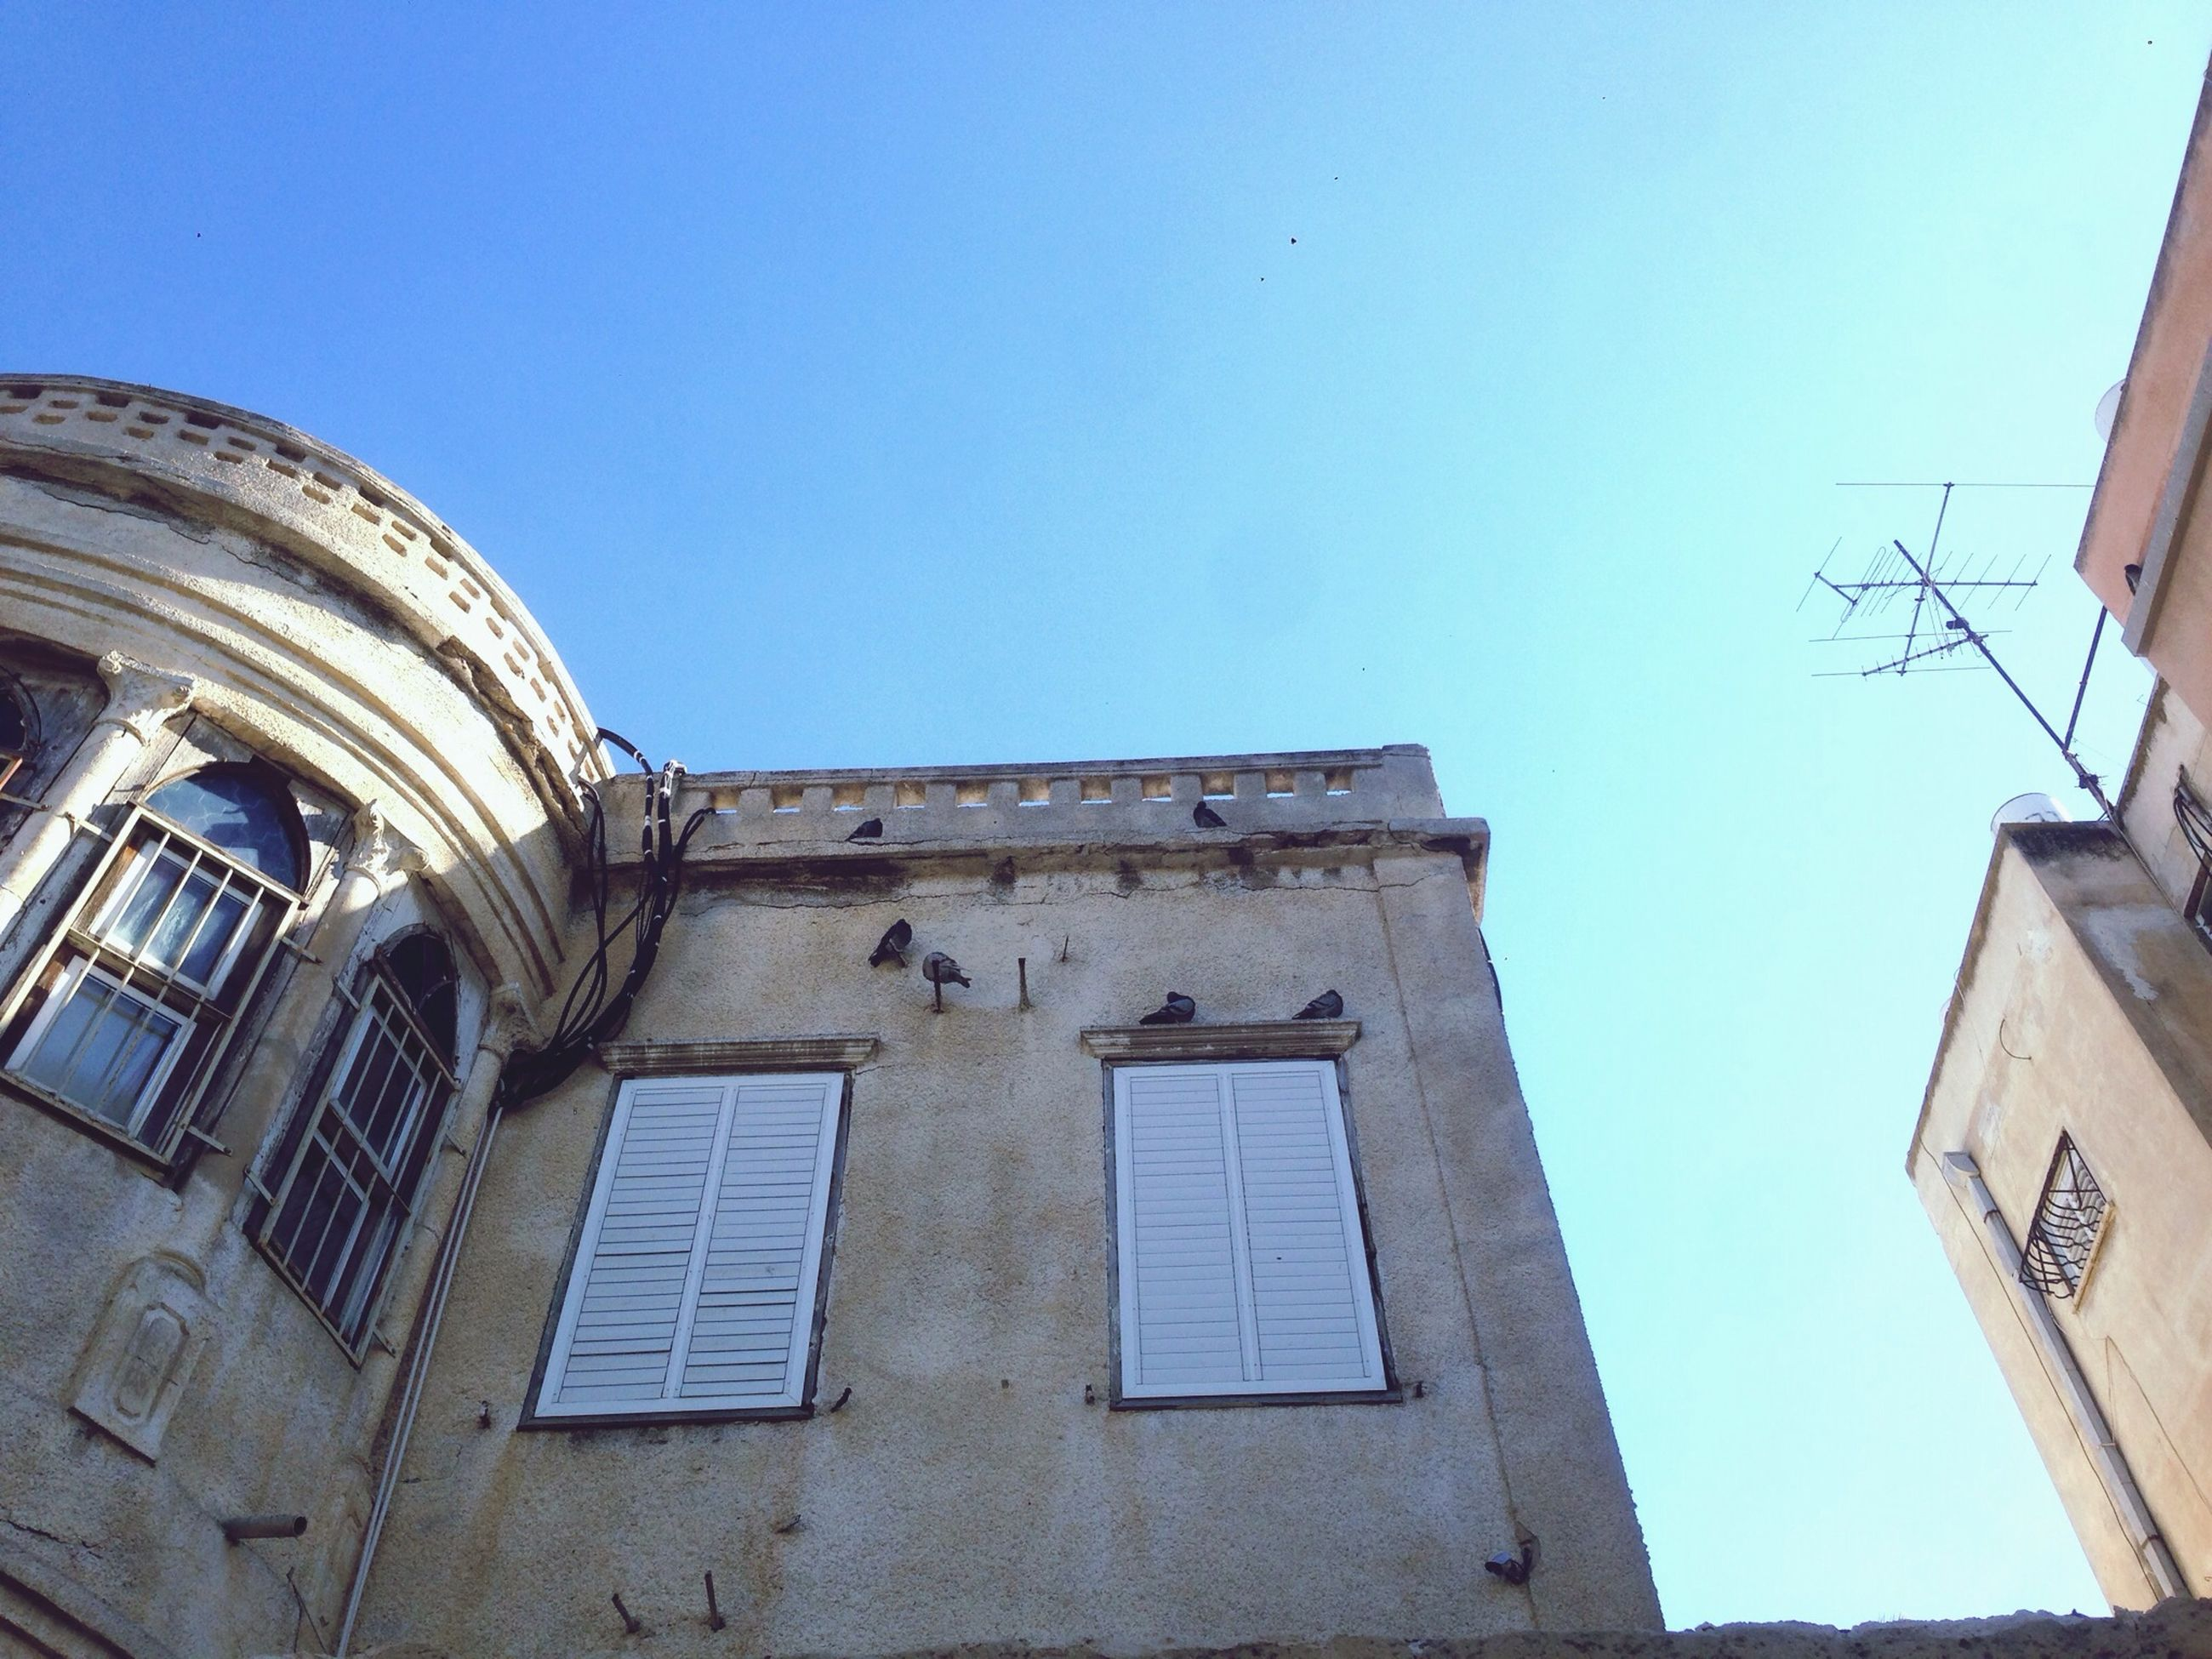 architecture, building exterior, low angle view, built structure, clear sky, blue, window, high section, building, copy space, day, outdoors, church, no people, sunlight, old, residential structure, sky, city, residential building